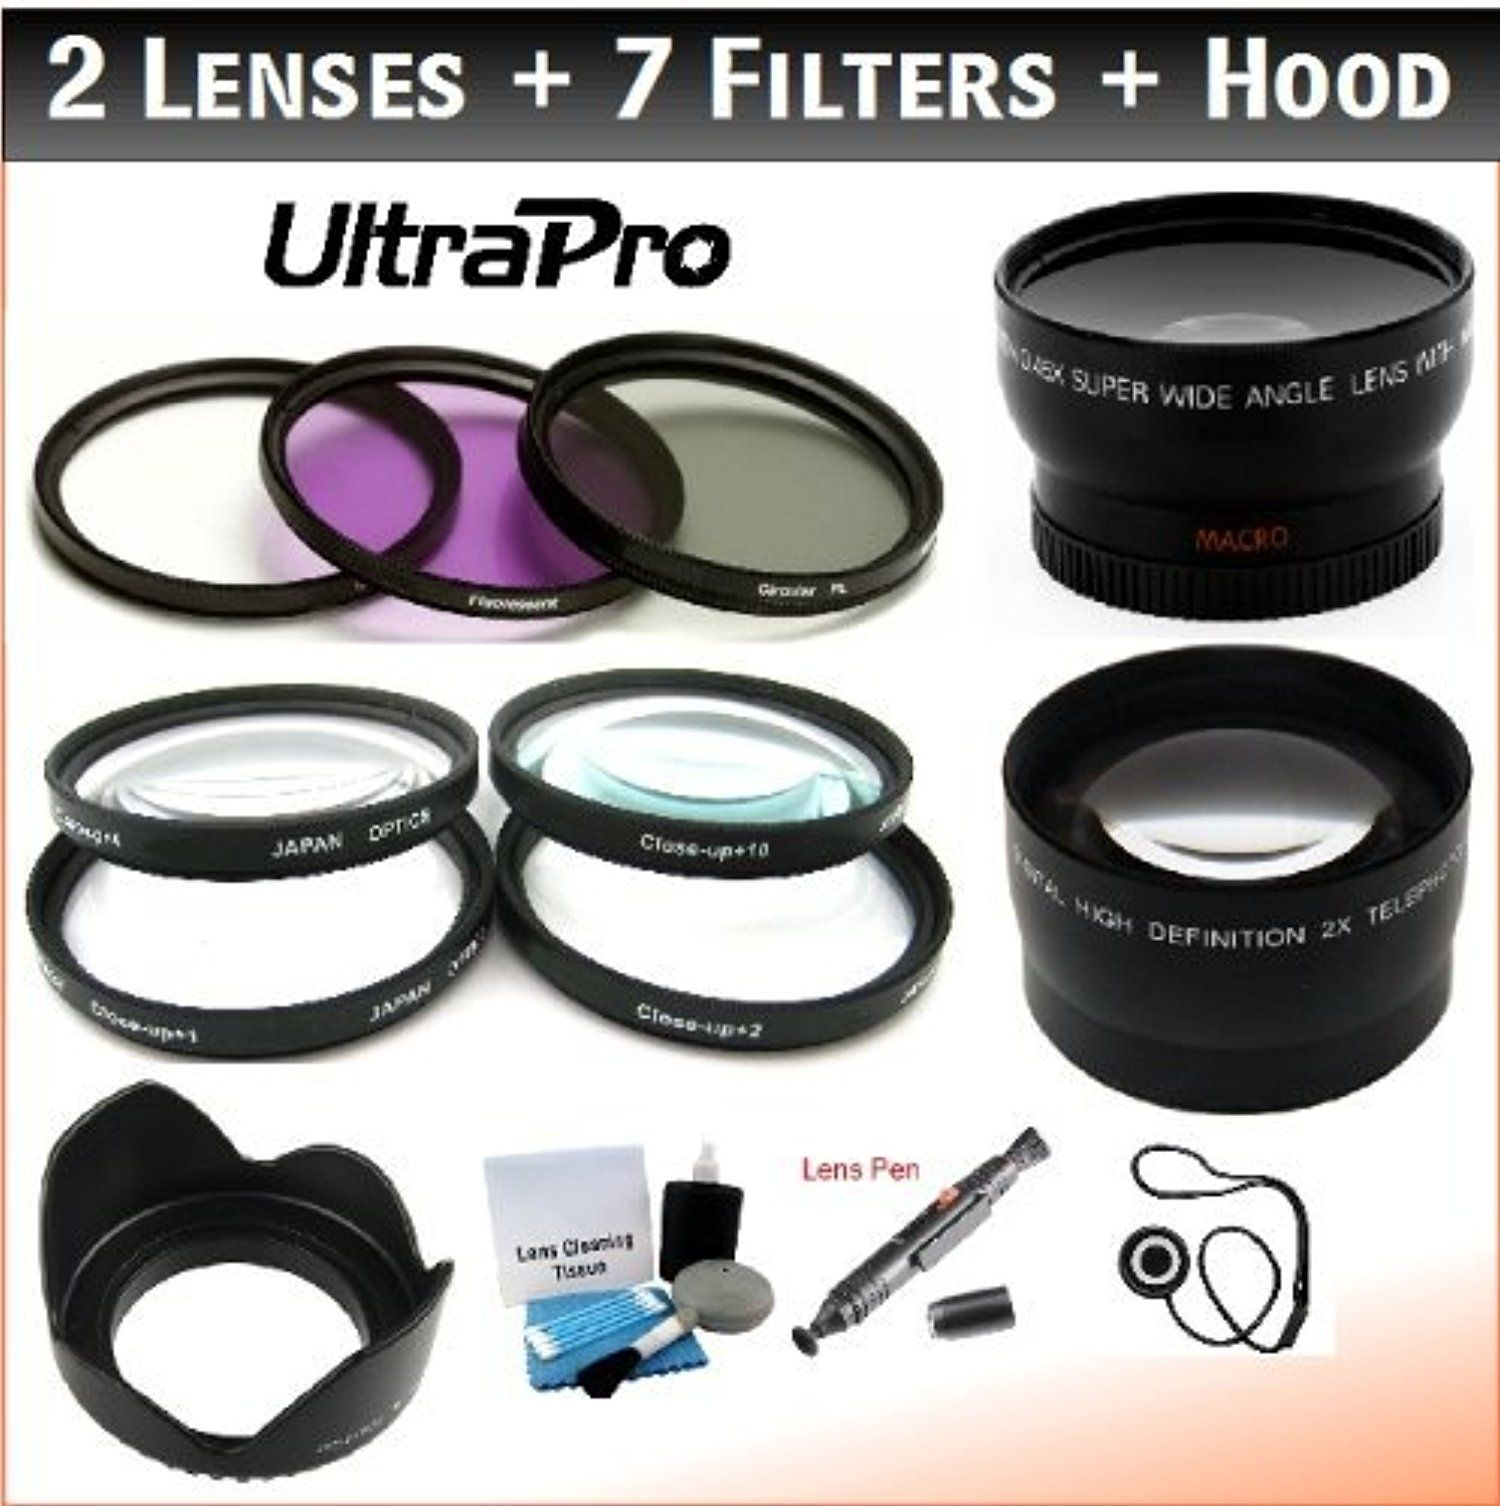 55mm Deluxe Lens + Filter Bundle UV, CPL, FLD, +1, +2